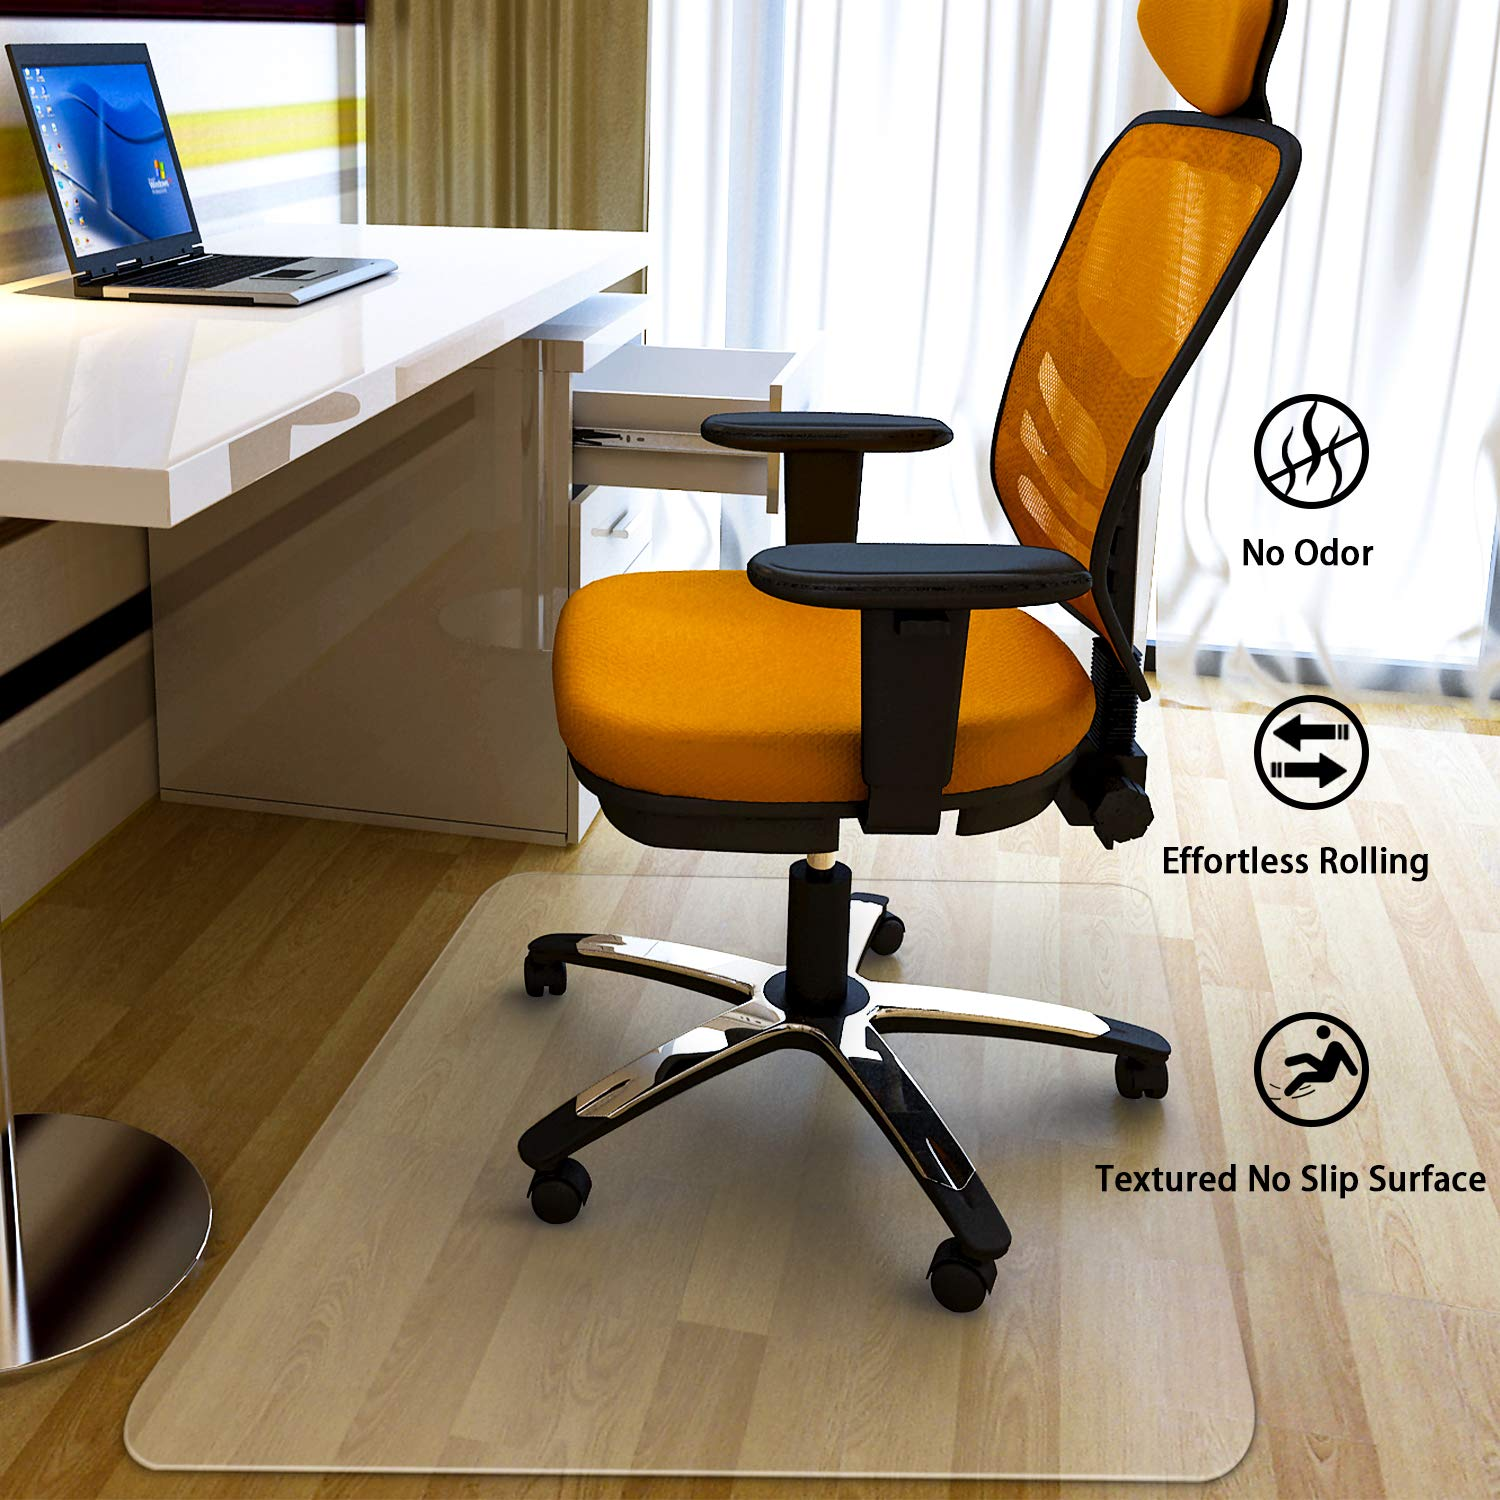 MATDOM Chair Mat for Wood Floor at Home and Office Heavy Duty Transparent Solid Multiple Size Eco-Friendly, 1/16'' Thick Rectangular by MATDOM